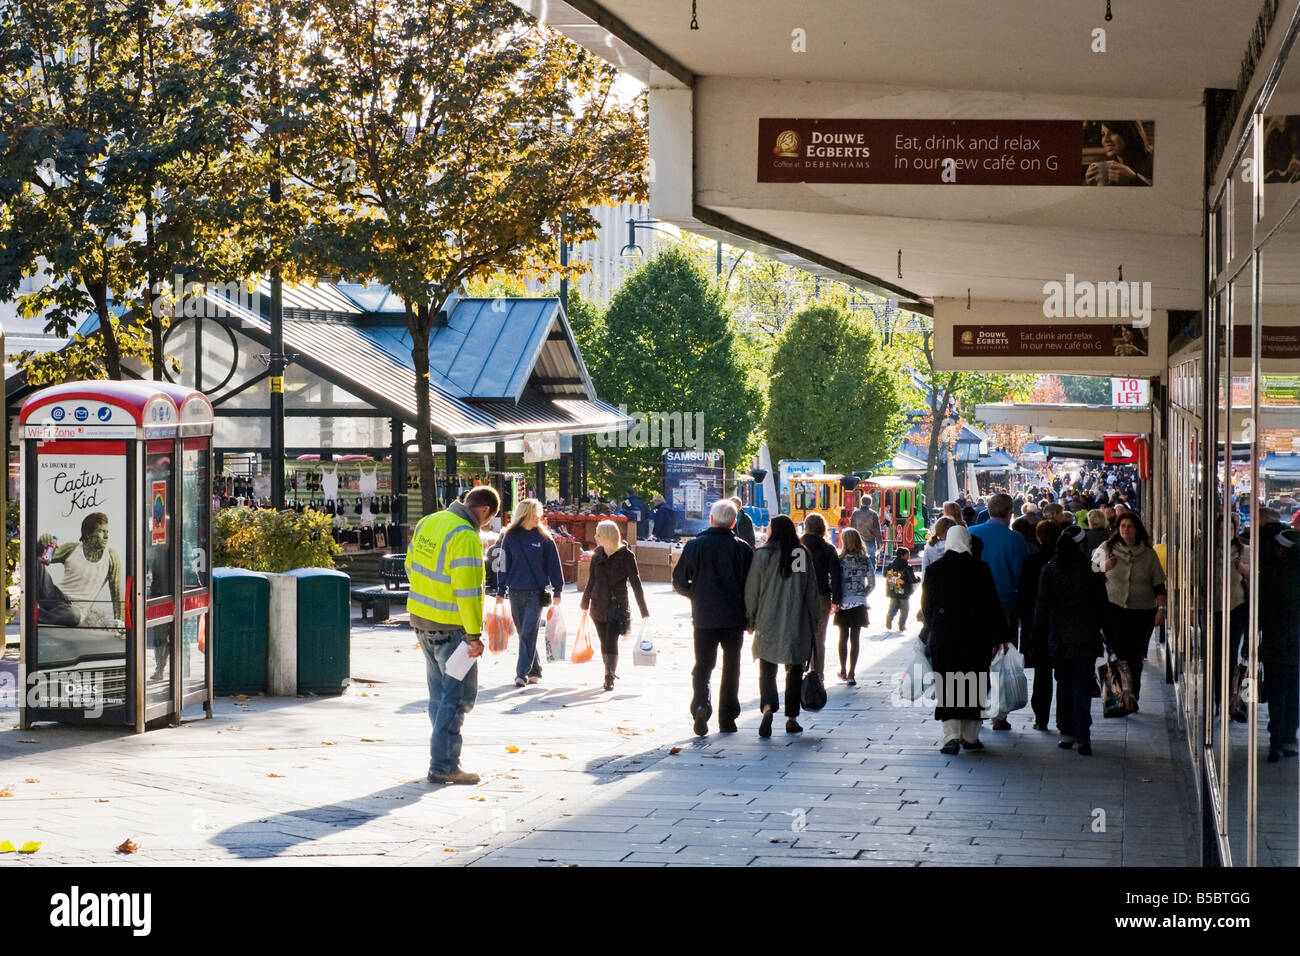 'The Moor' shopping precinct in Sheffield,South Yorkshire,England, 'Great Britain' - Stock Image